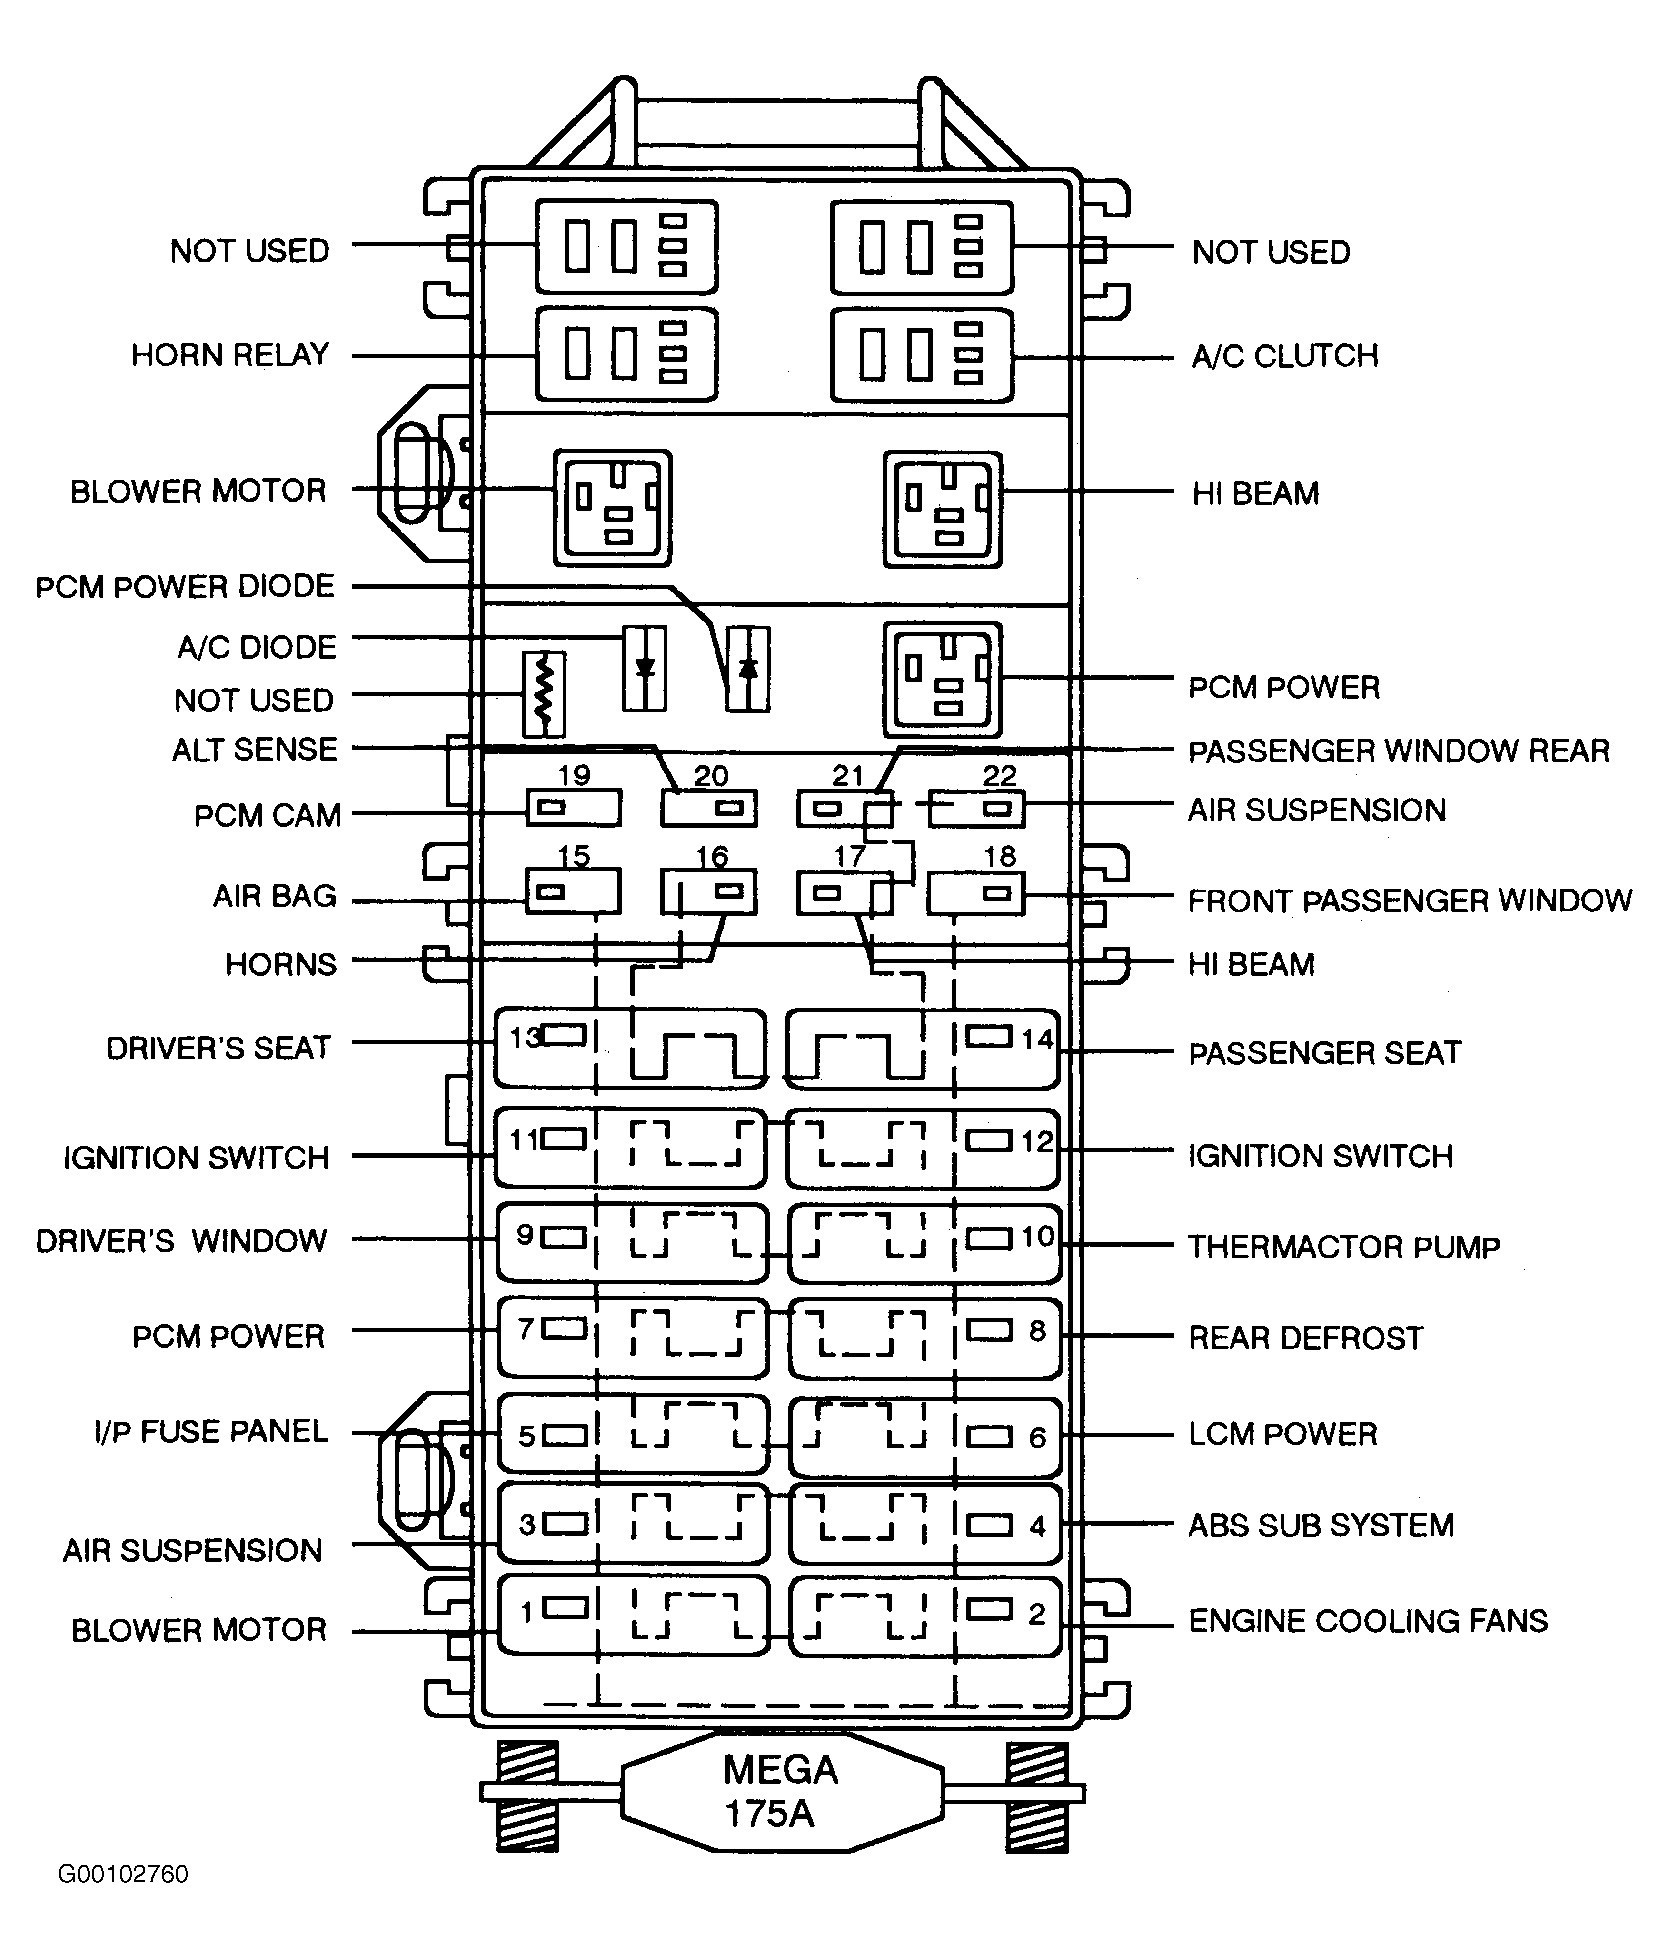 Be Hind Box Wiring Diagram 1997 Lincoln Town Car Gloe